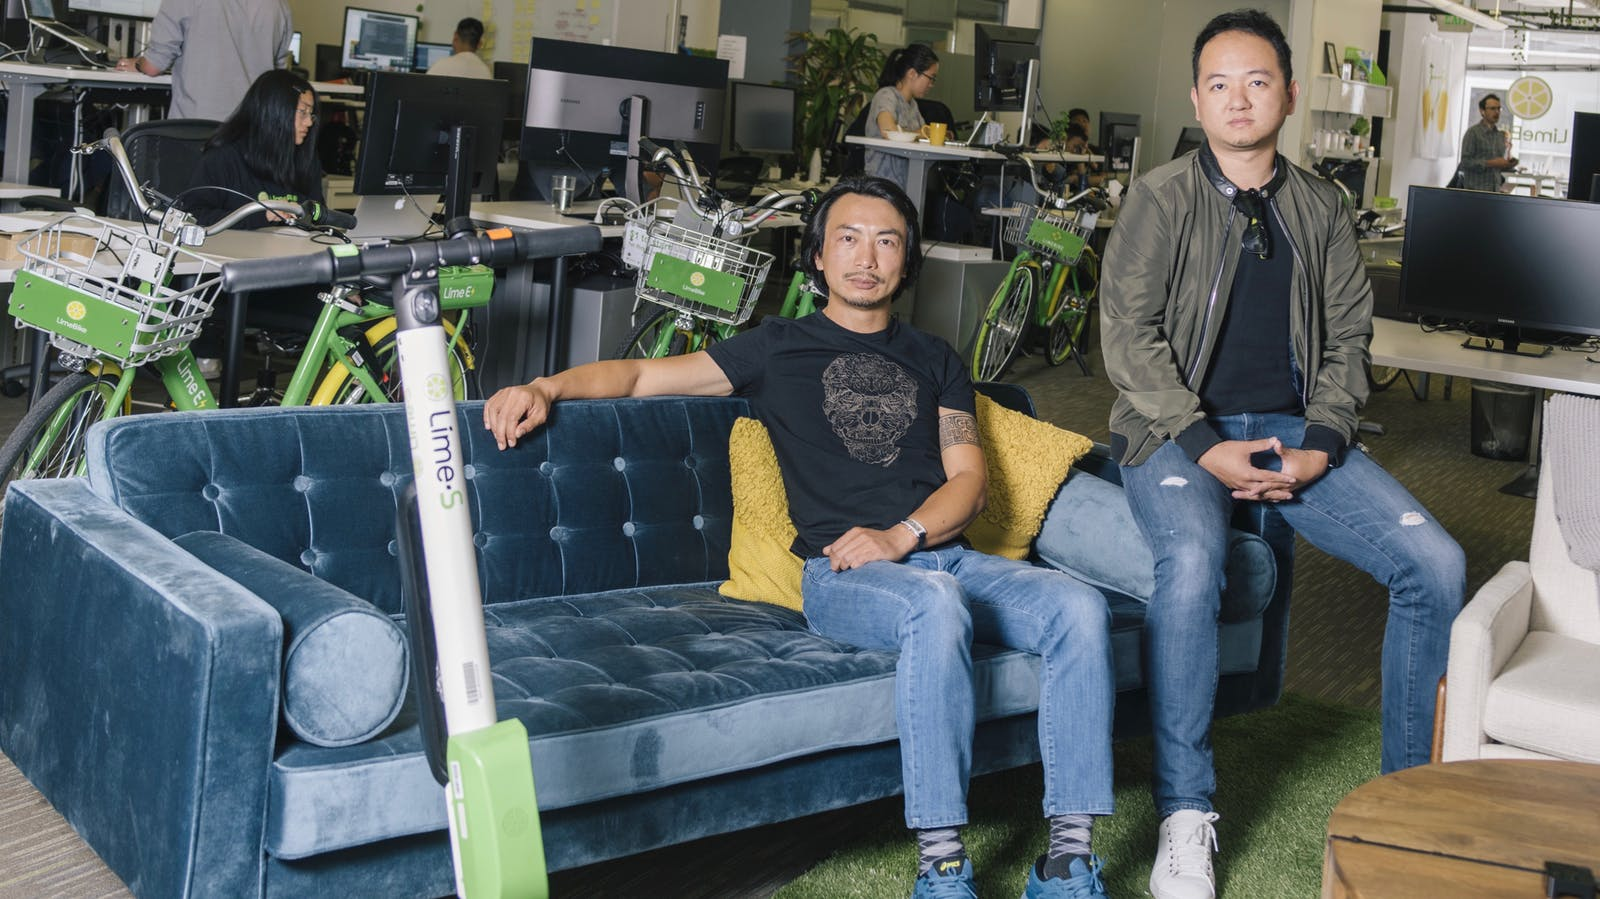 Lime co-founders Toby Sun and Brad Bao at the company's San Mateo headquarters earlier this year. Photo by Bloomberg.